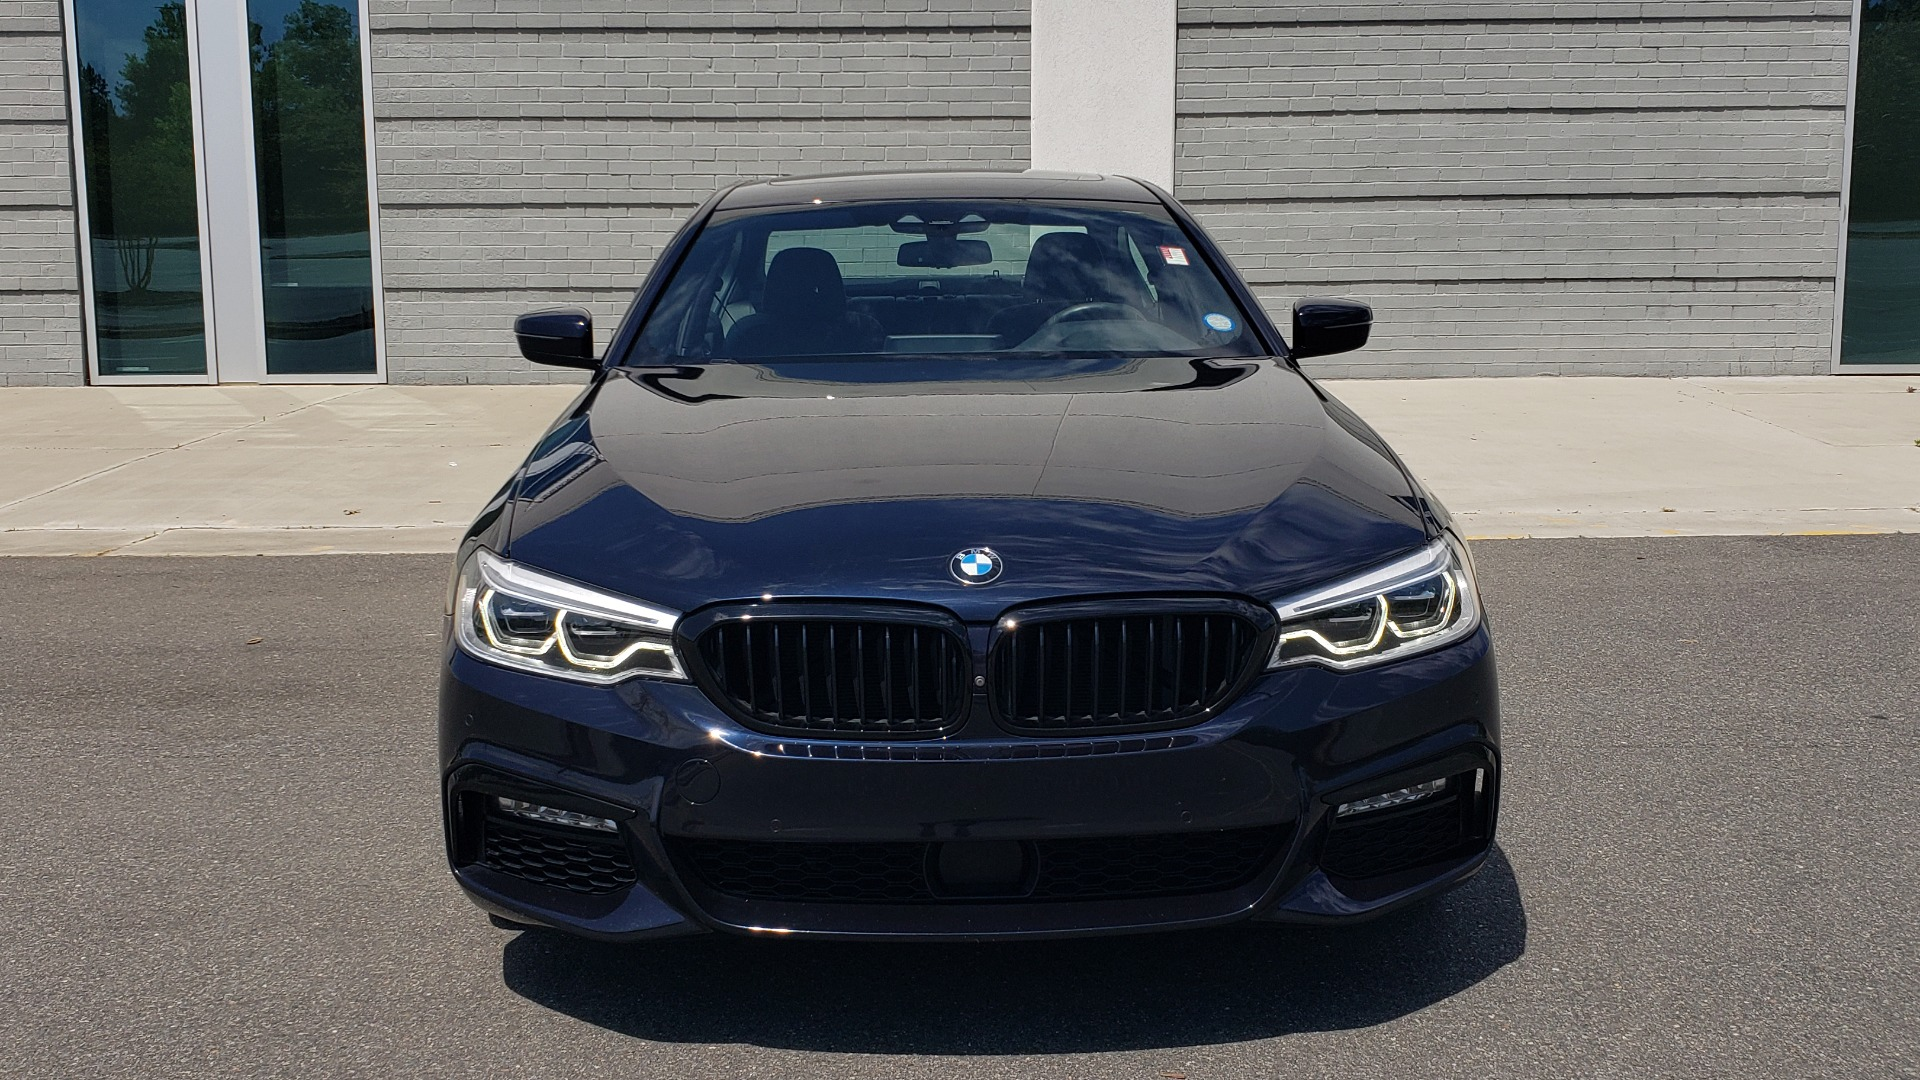 Used 2017 BMW 5 SERIES 540I XDRIVE M-SPORT / PREMIUM / DRVR ASST PLUS / CLD WTHR / LUXURY for sale Sold at Formula Imports in Charlotte NC 28227 22